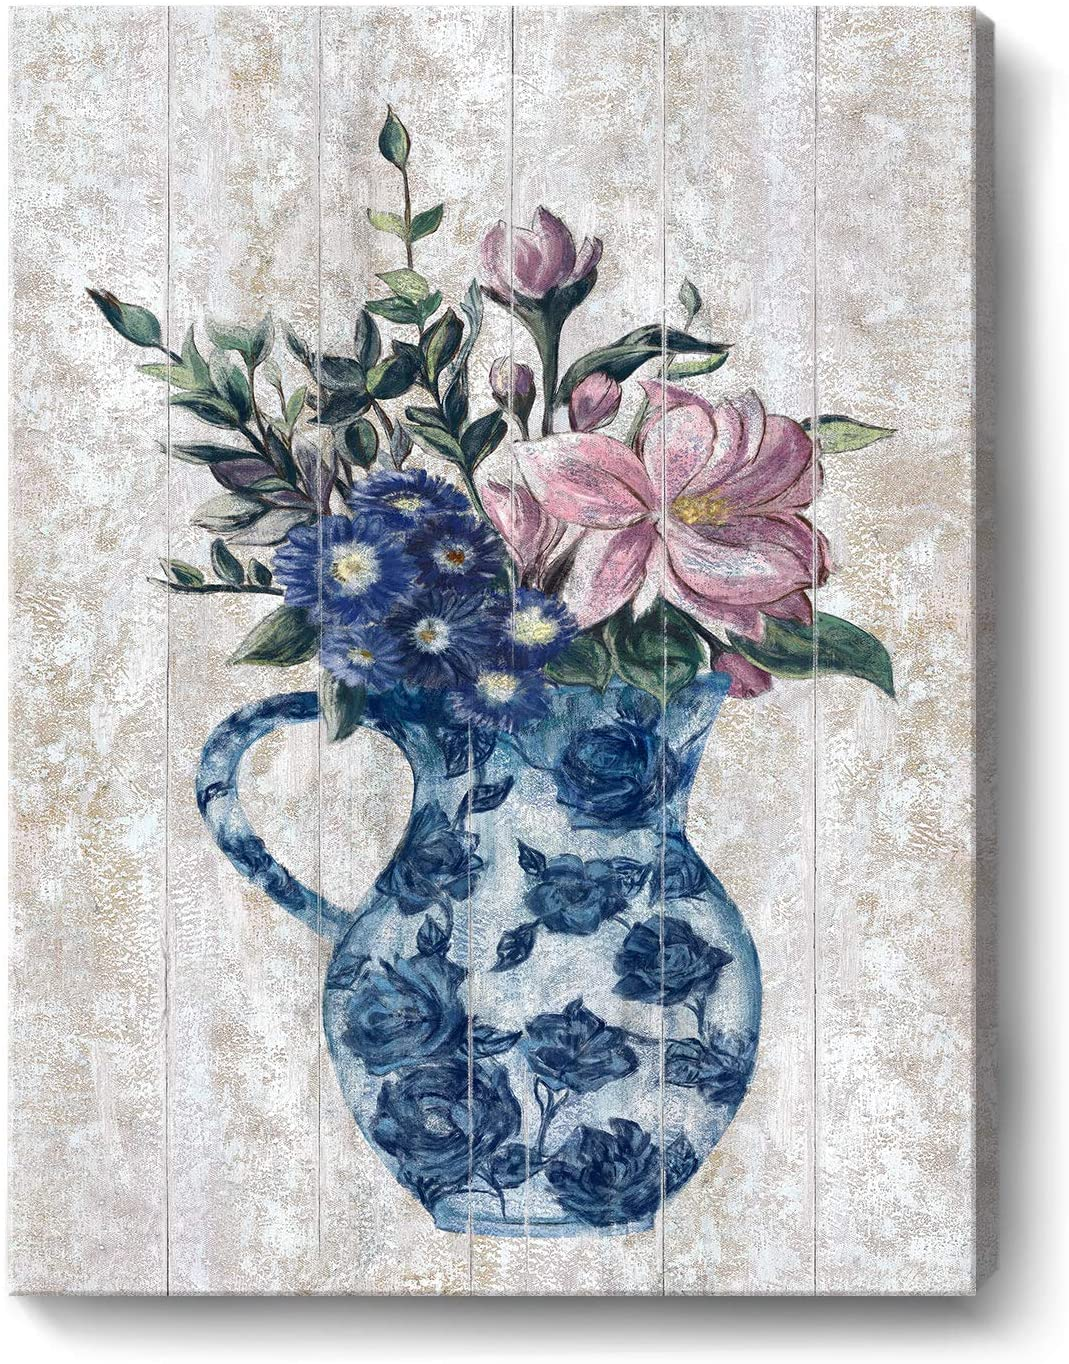 Bathroom Decor Wall Art Floral Canvas Print Modern Framed Flower Vase Picture Botanical Artwork Wood Background for Home Kitchen Bedroom Girl Room Farmhouse Blue and Pink Ready to Hang 12x16inch